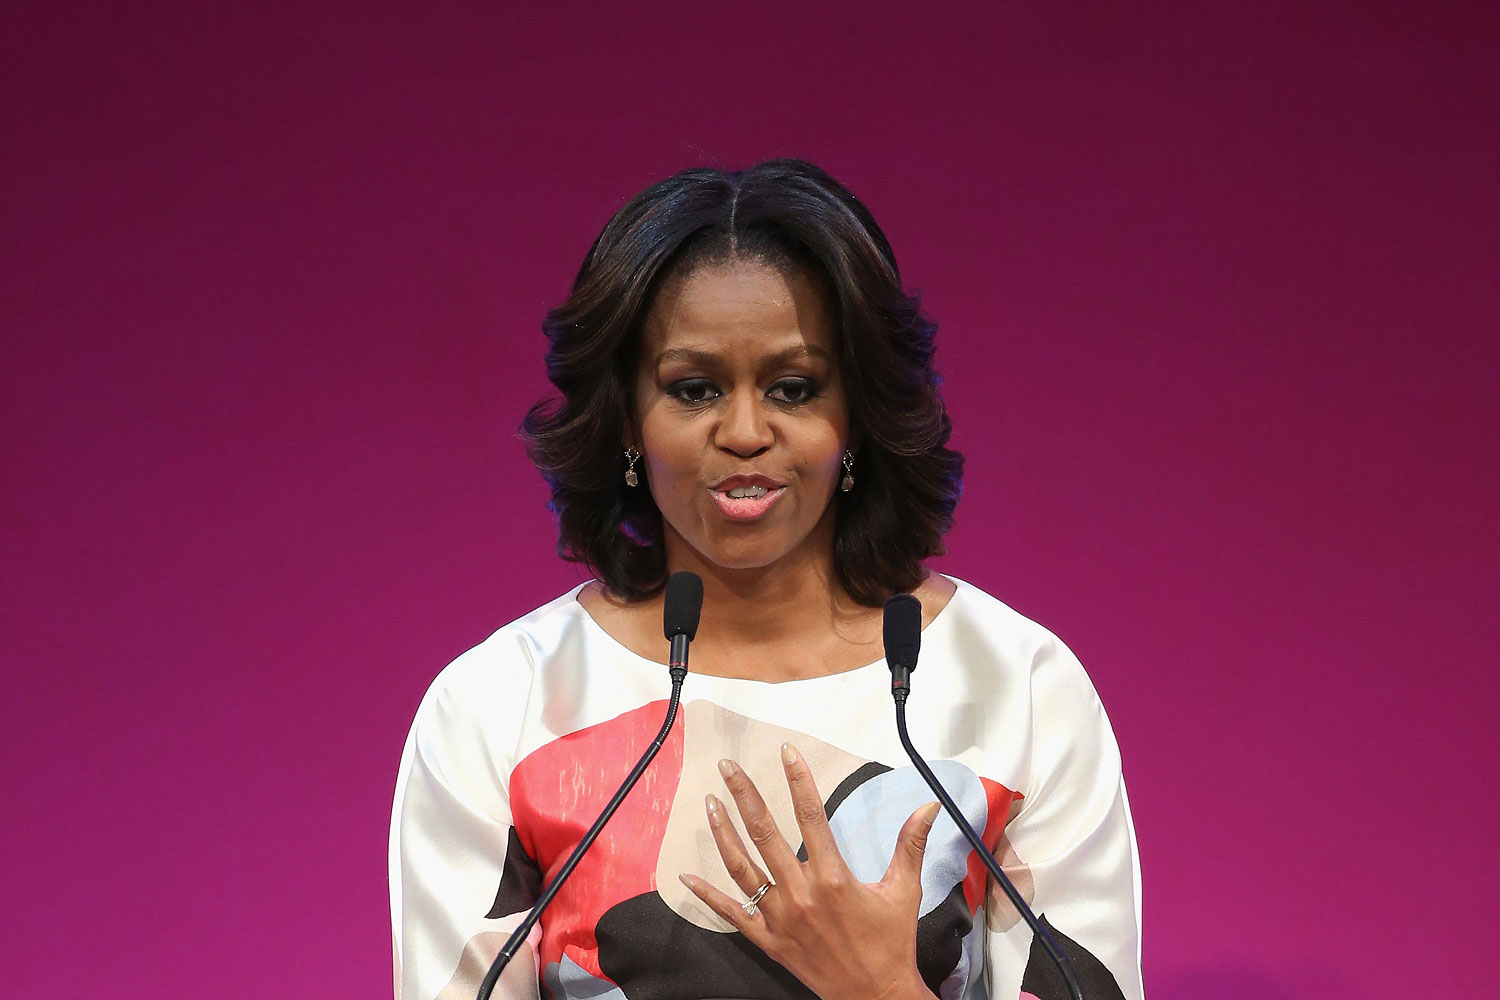 U.S. First Lady Michelle Obama delivers a speech at the Stanford Center at Peking University on March 22, 2014 in Beijing, China.